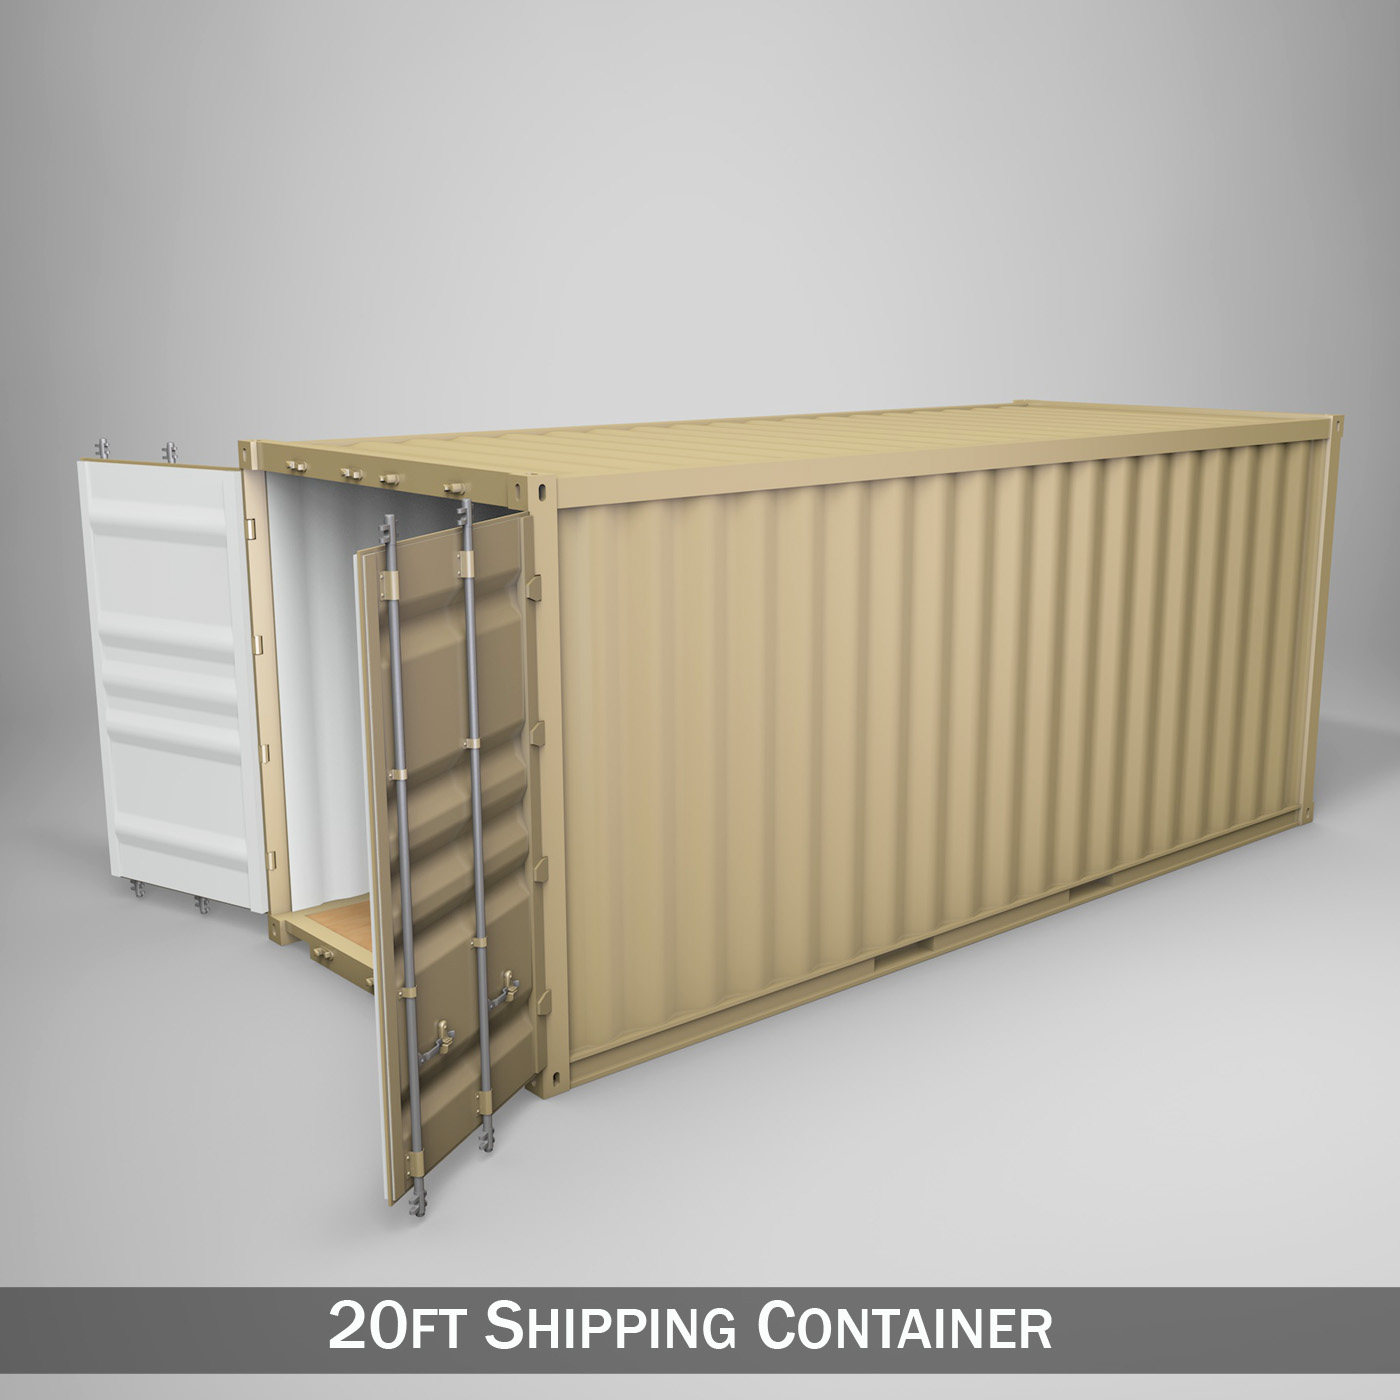 20ft shipping container 3d model 3ds fbx c4d lwo obj 252255